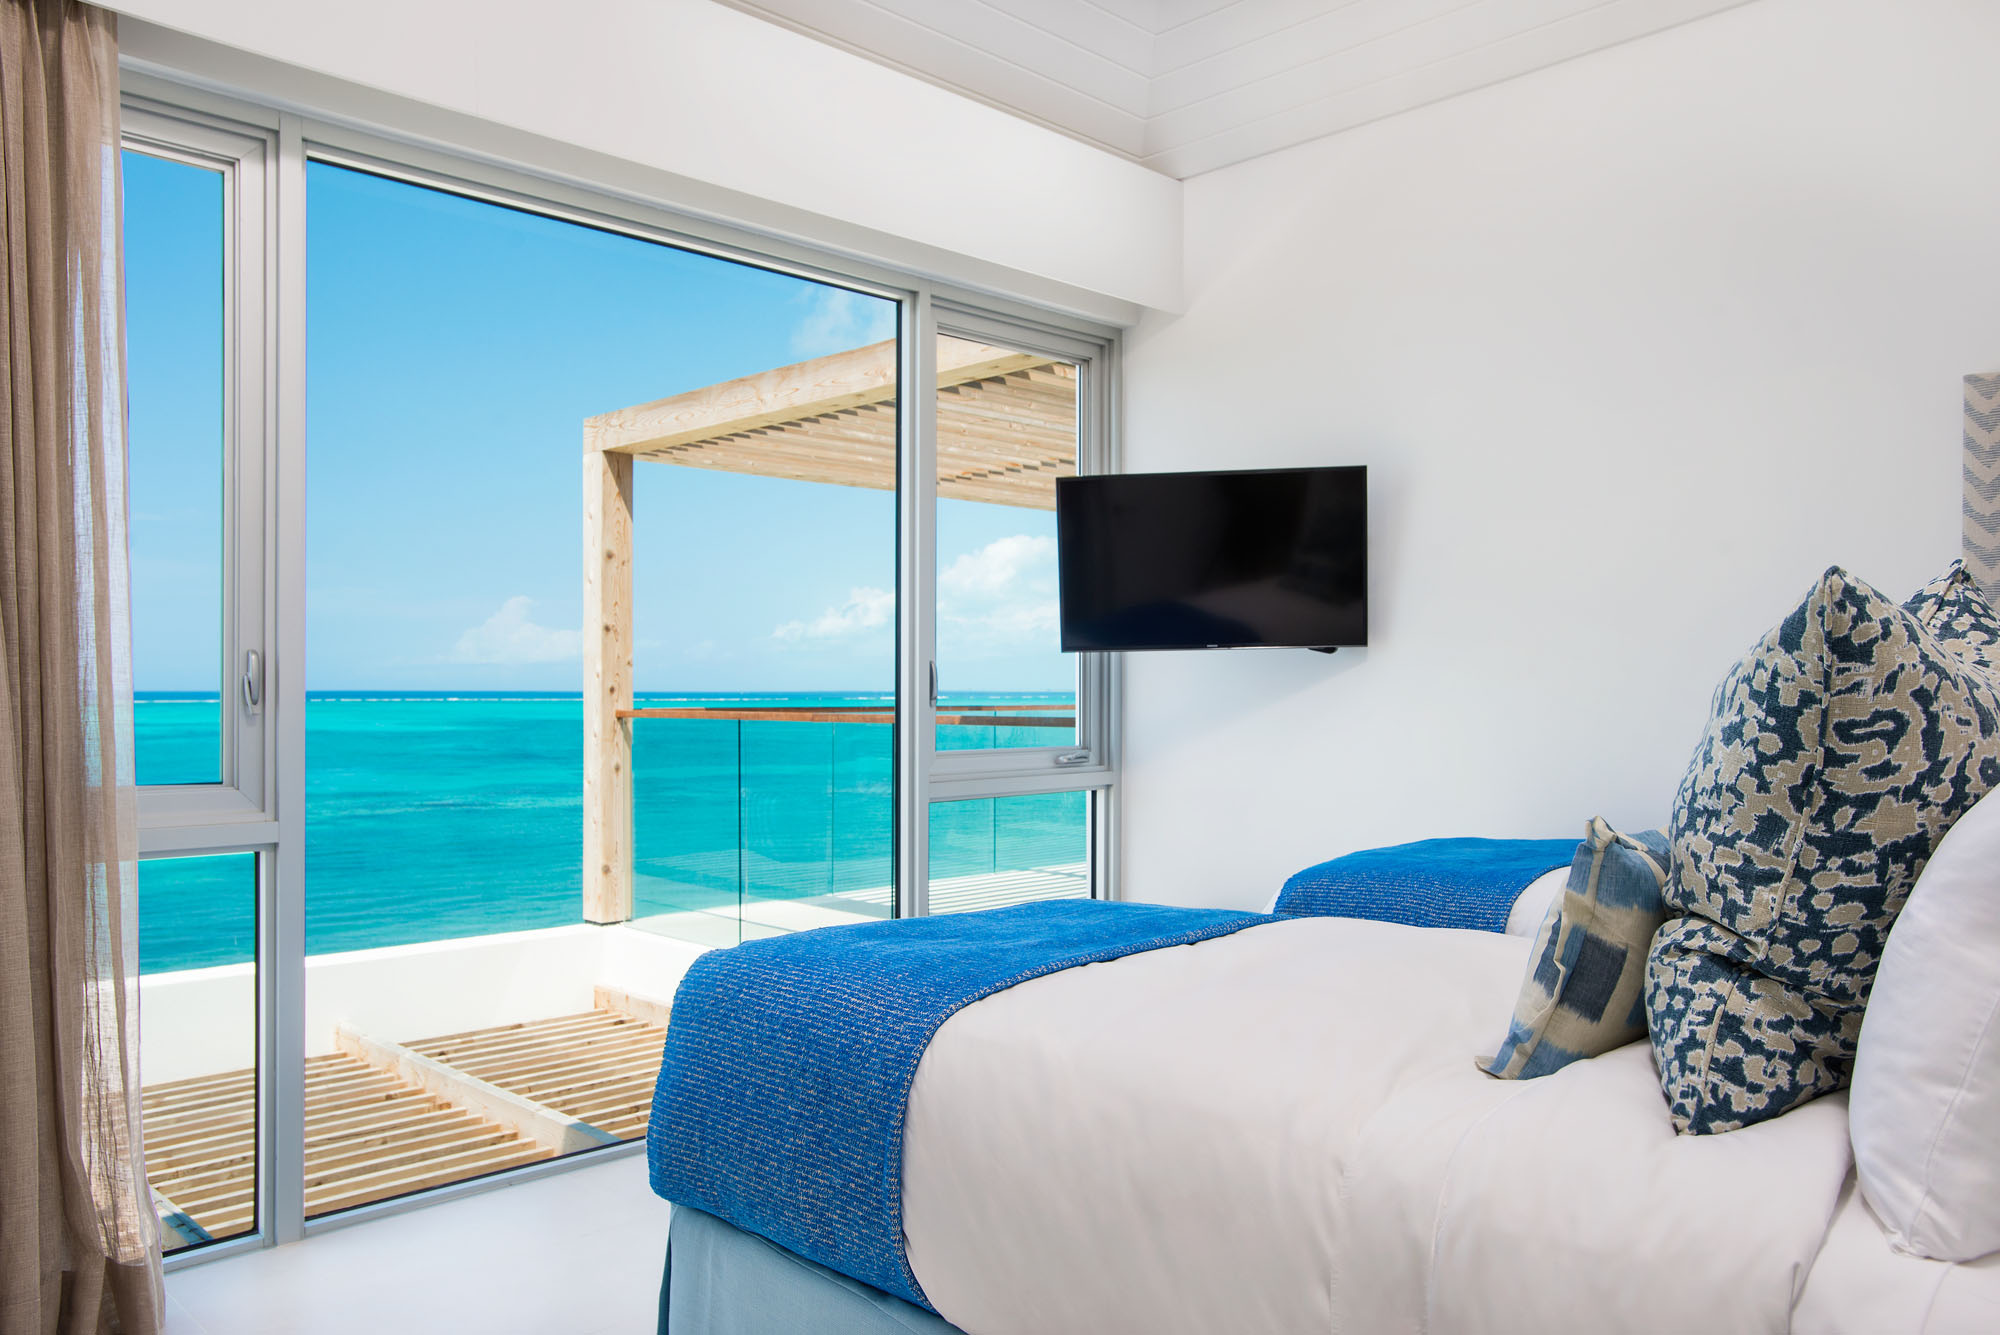 Some of the bedrooms feature two twin beds at these Turks and Caicos luxury beach villa rentals.